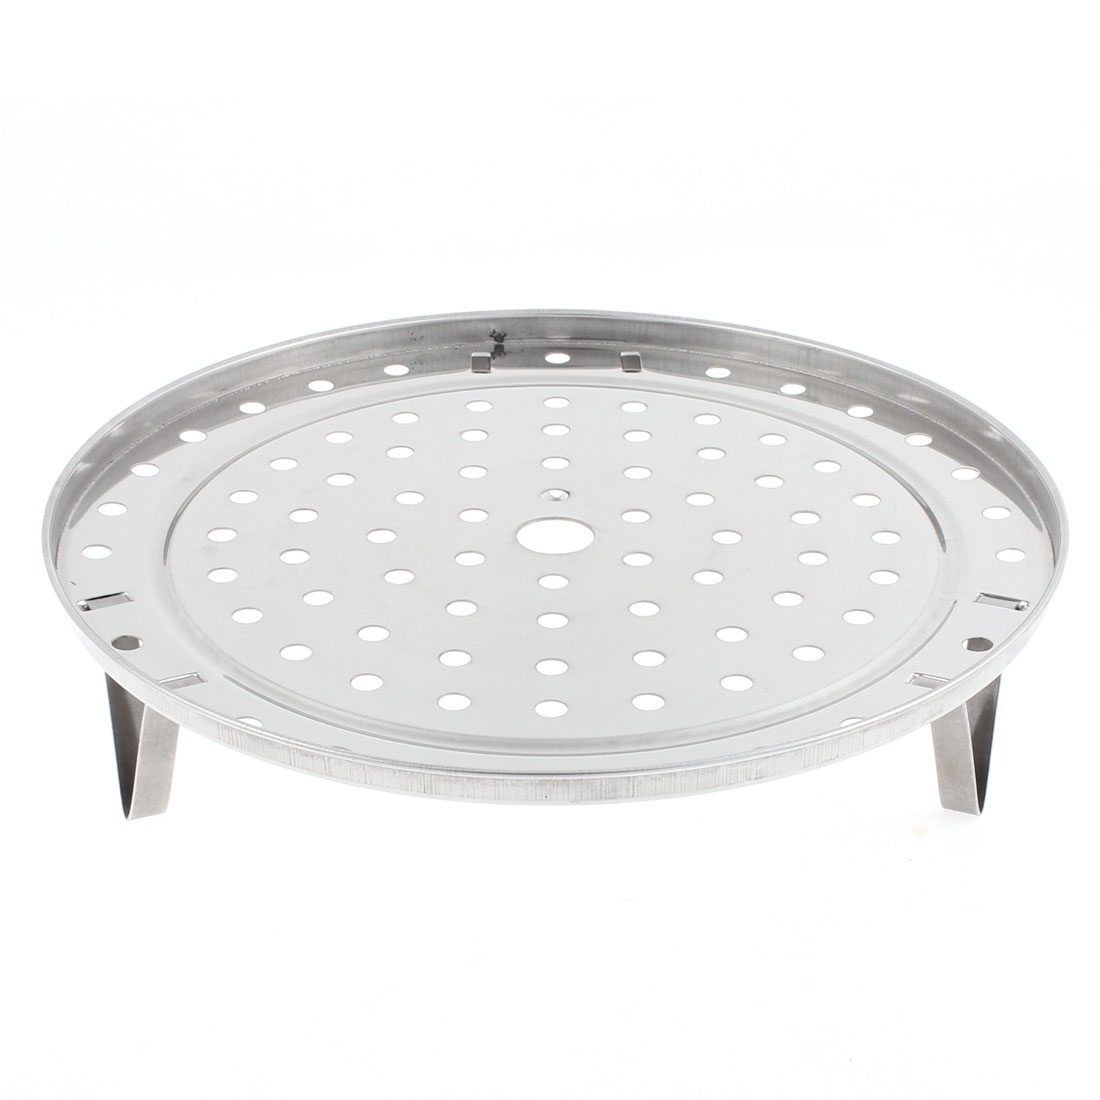 Kitchen Stainless Steel Cooking Food Steamer Rack Plate 275mm Dia 2pcs